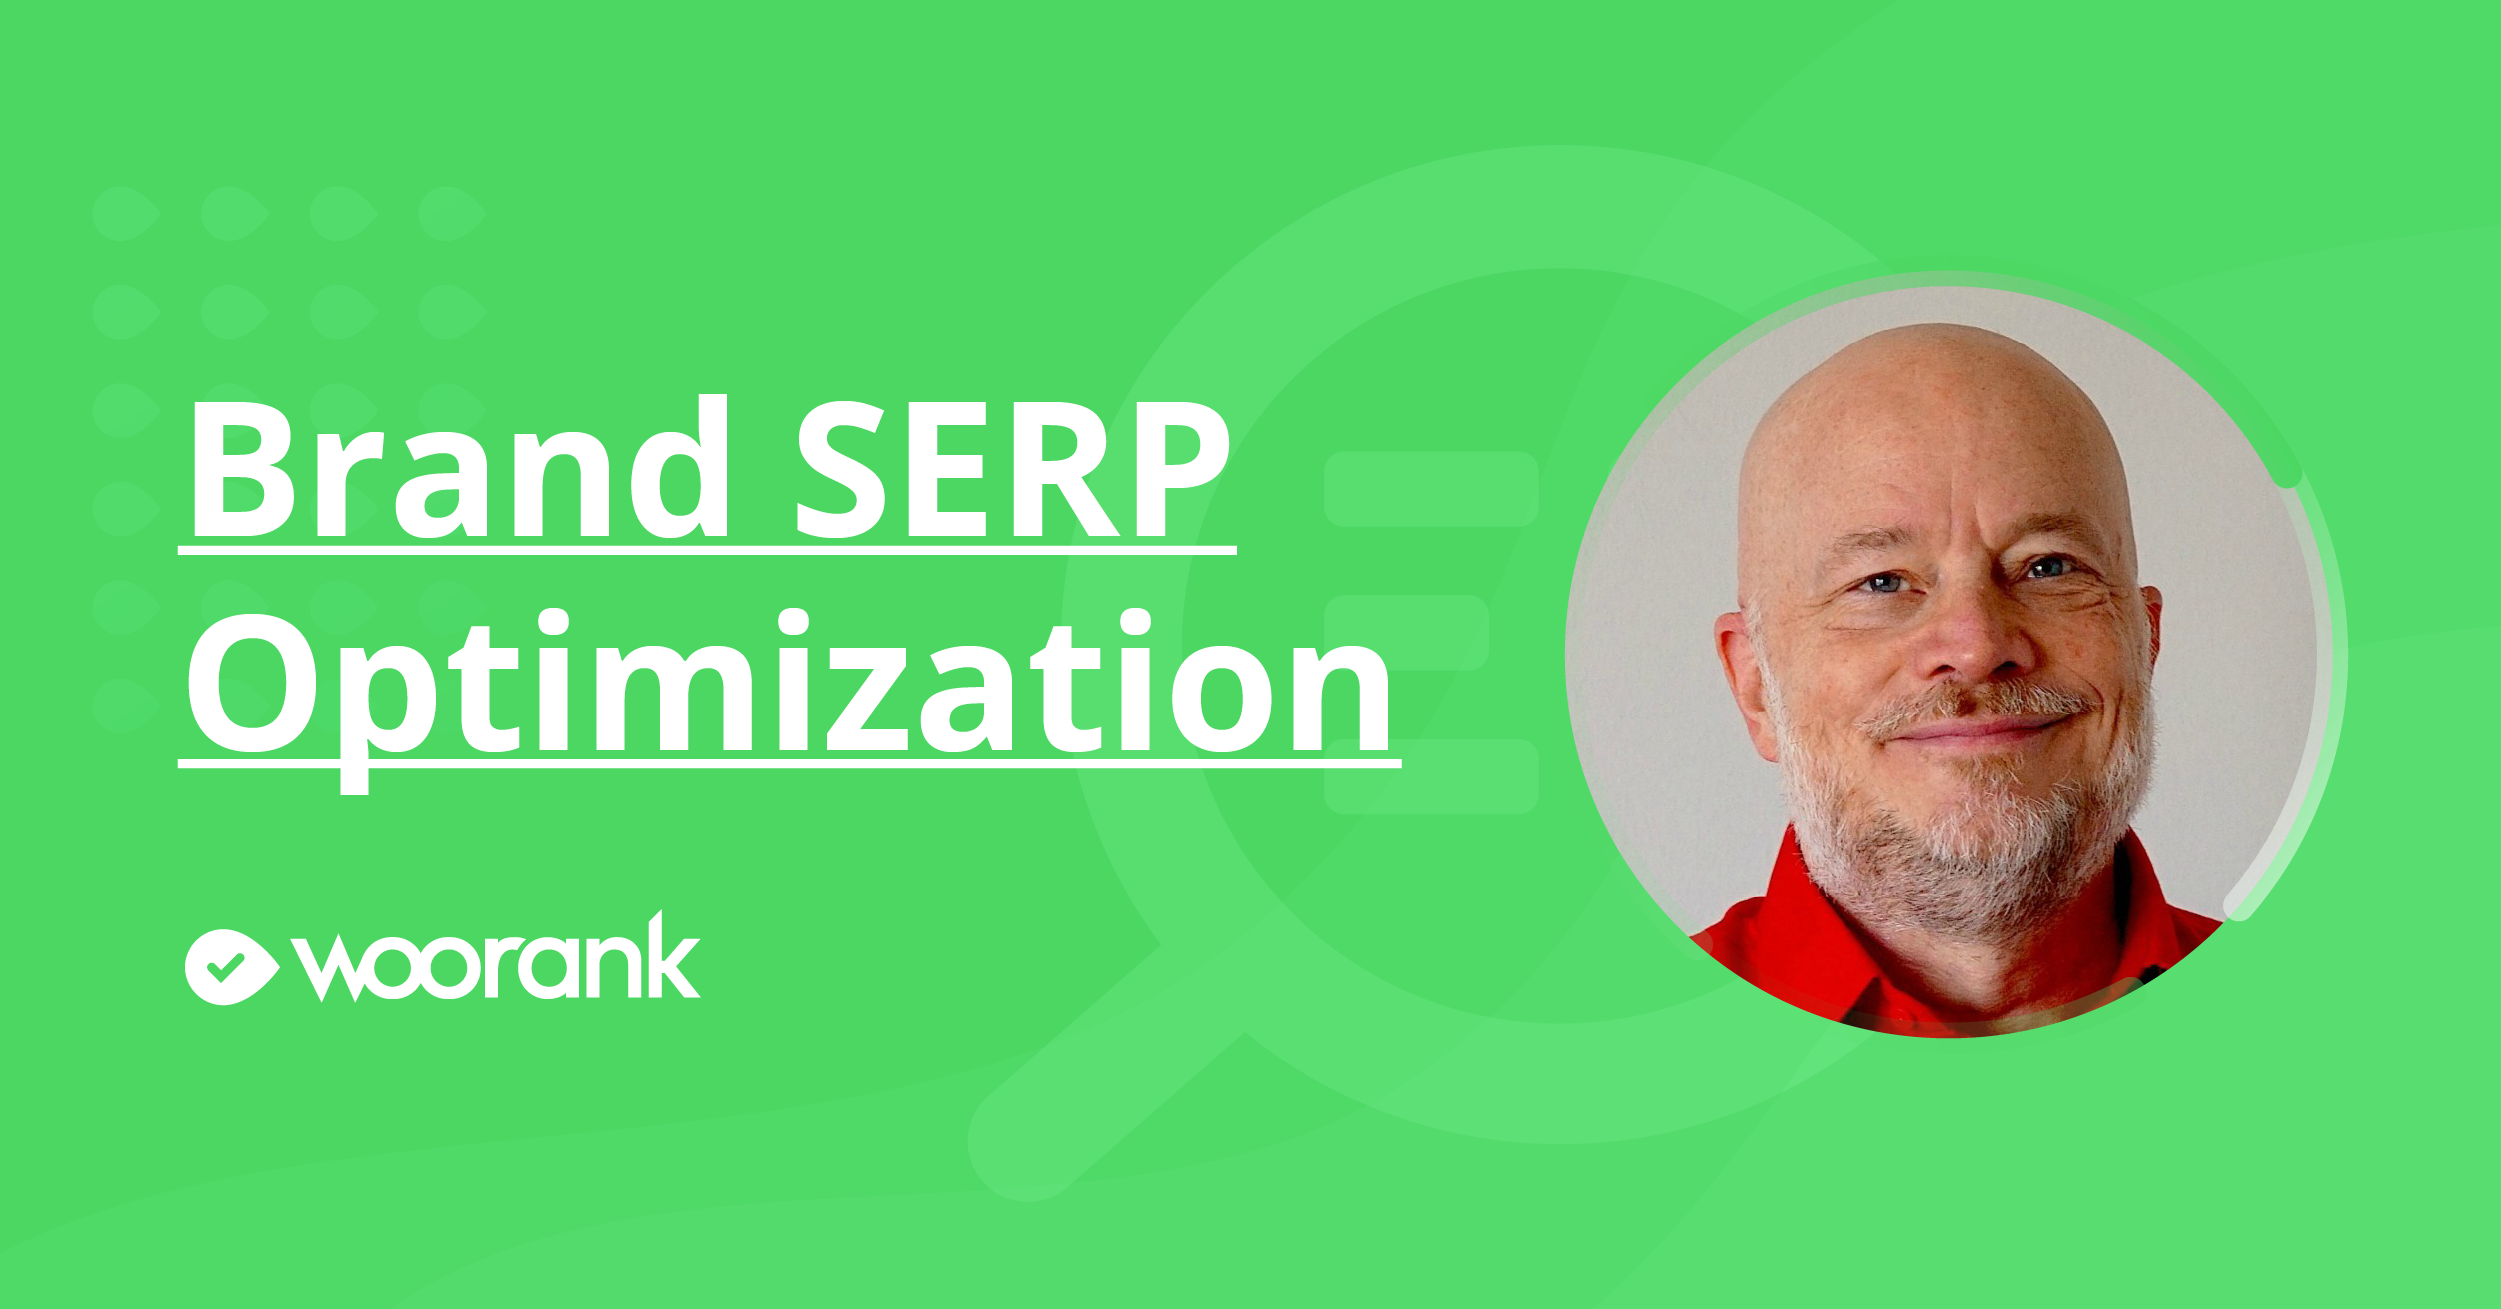 Optimizing Your Brand SERP